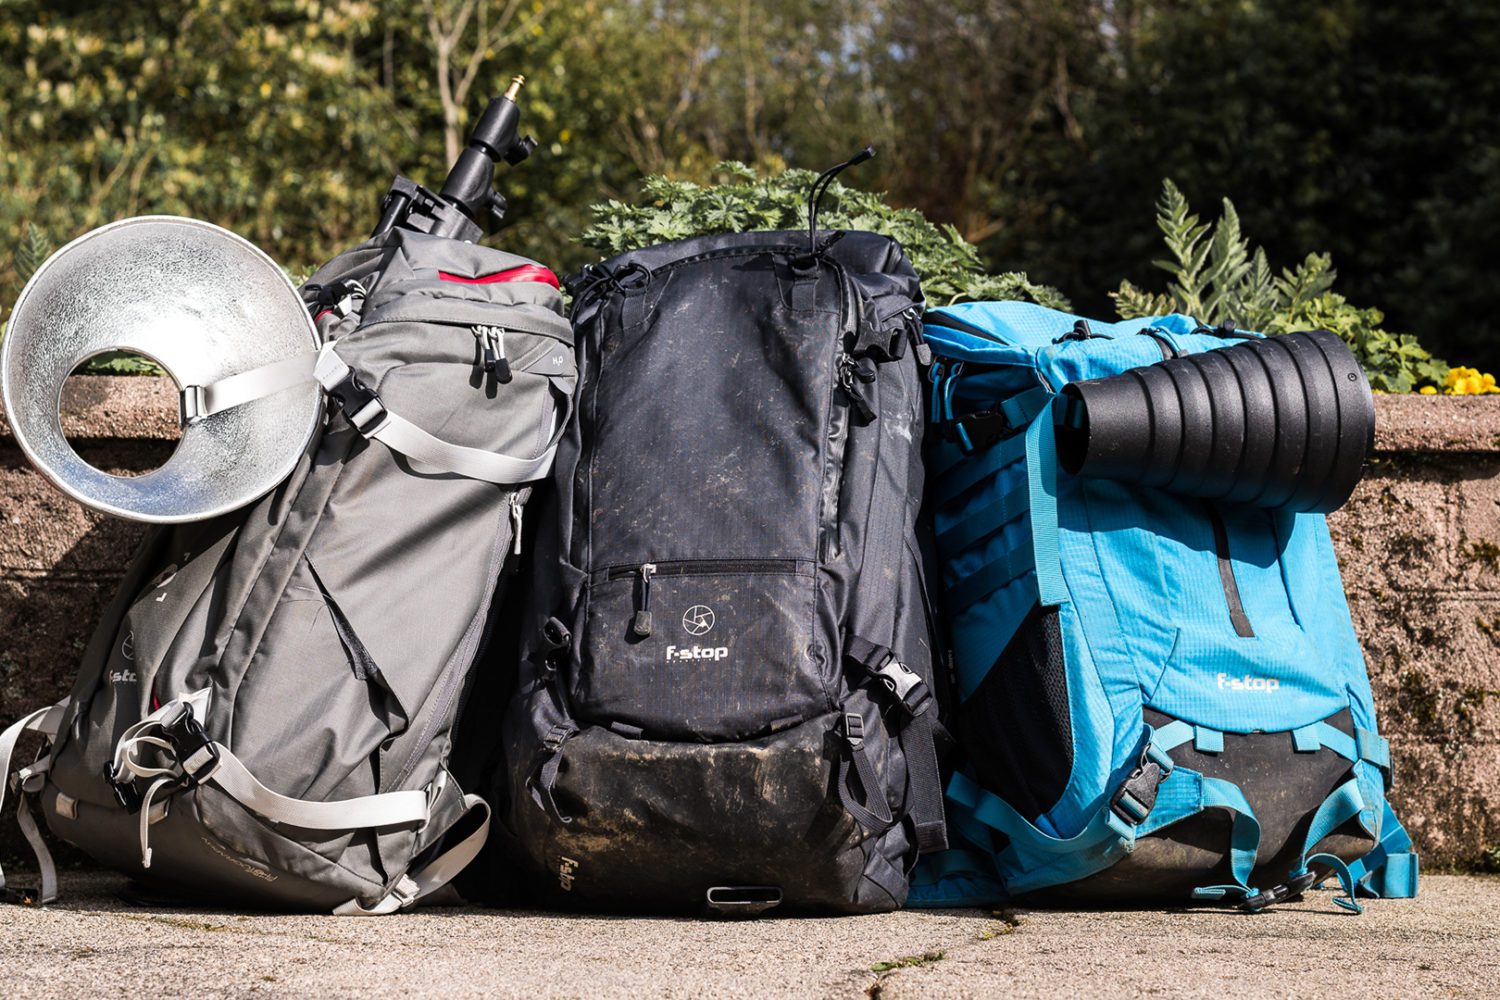 Simplifying your camera bag choices: How the pros use modular systems